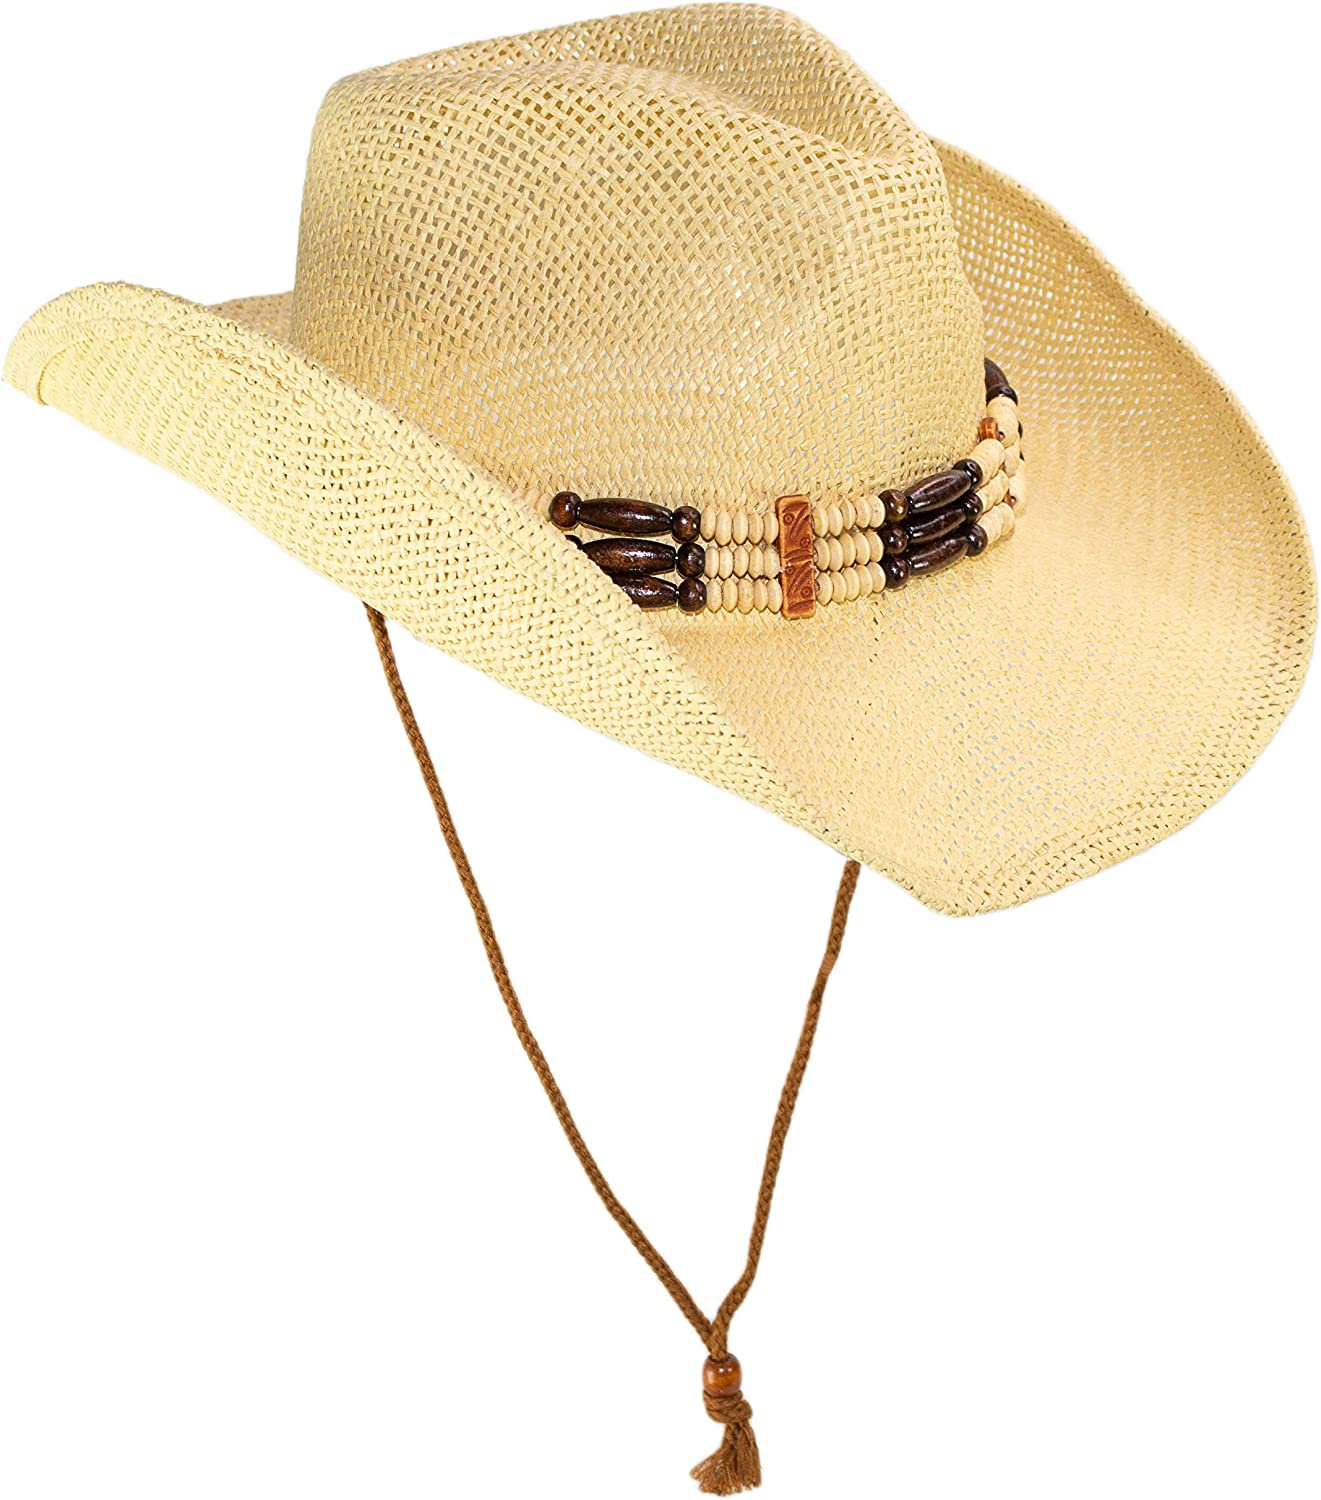 Cute Comfy Flex Fit Woven Beach Cowboy Hat, Western Cowgirl Hat with Wood Bead Hatband Adjustable Chin Strap